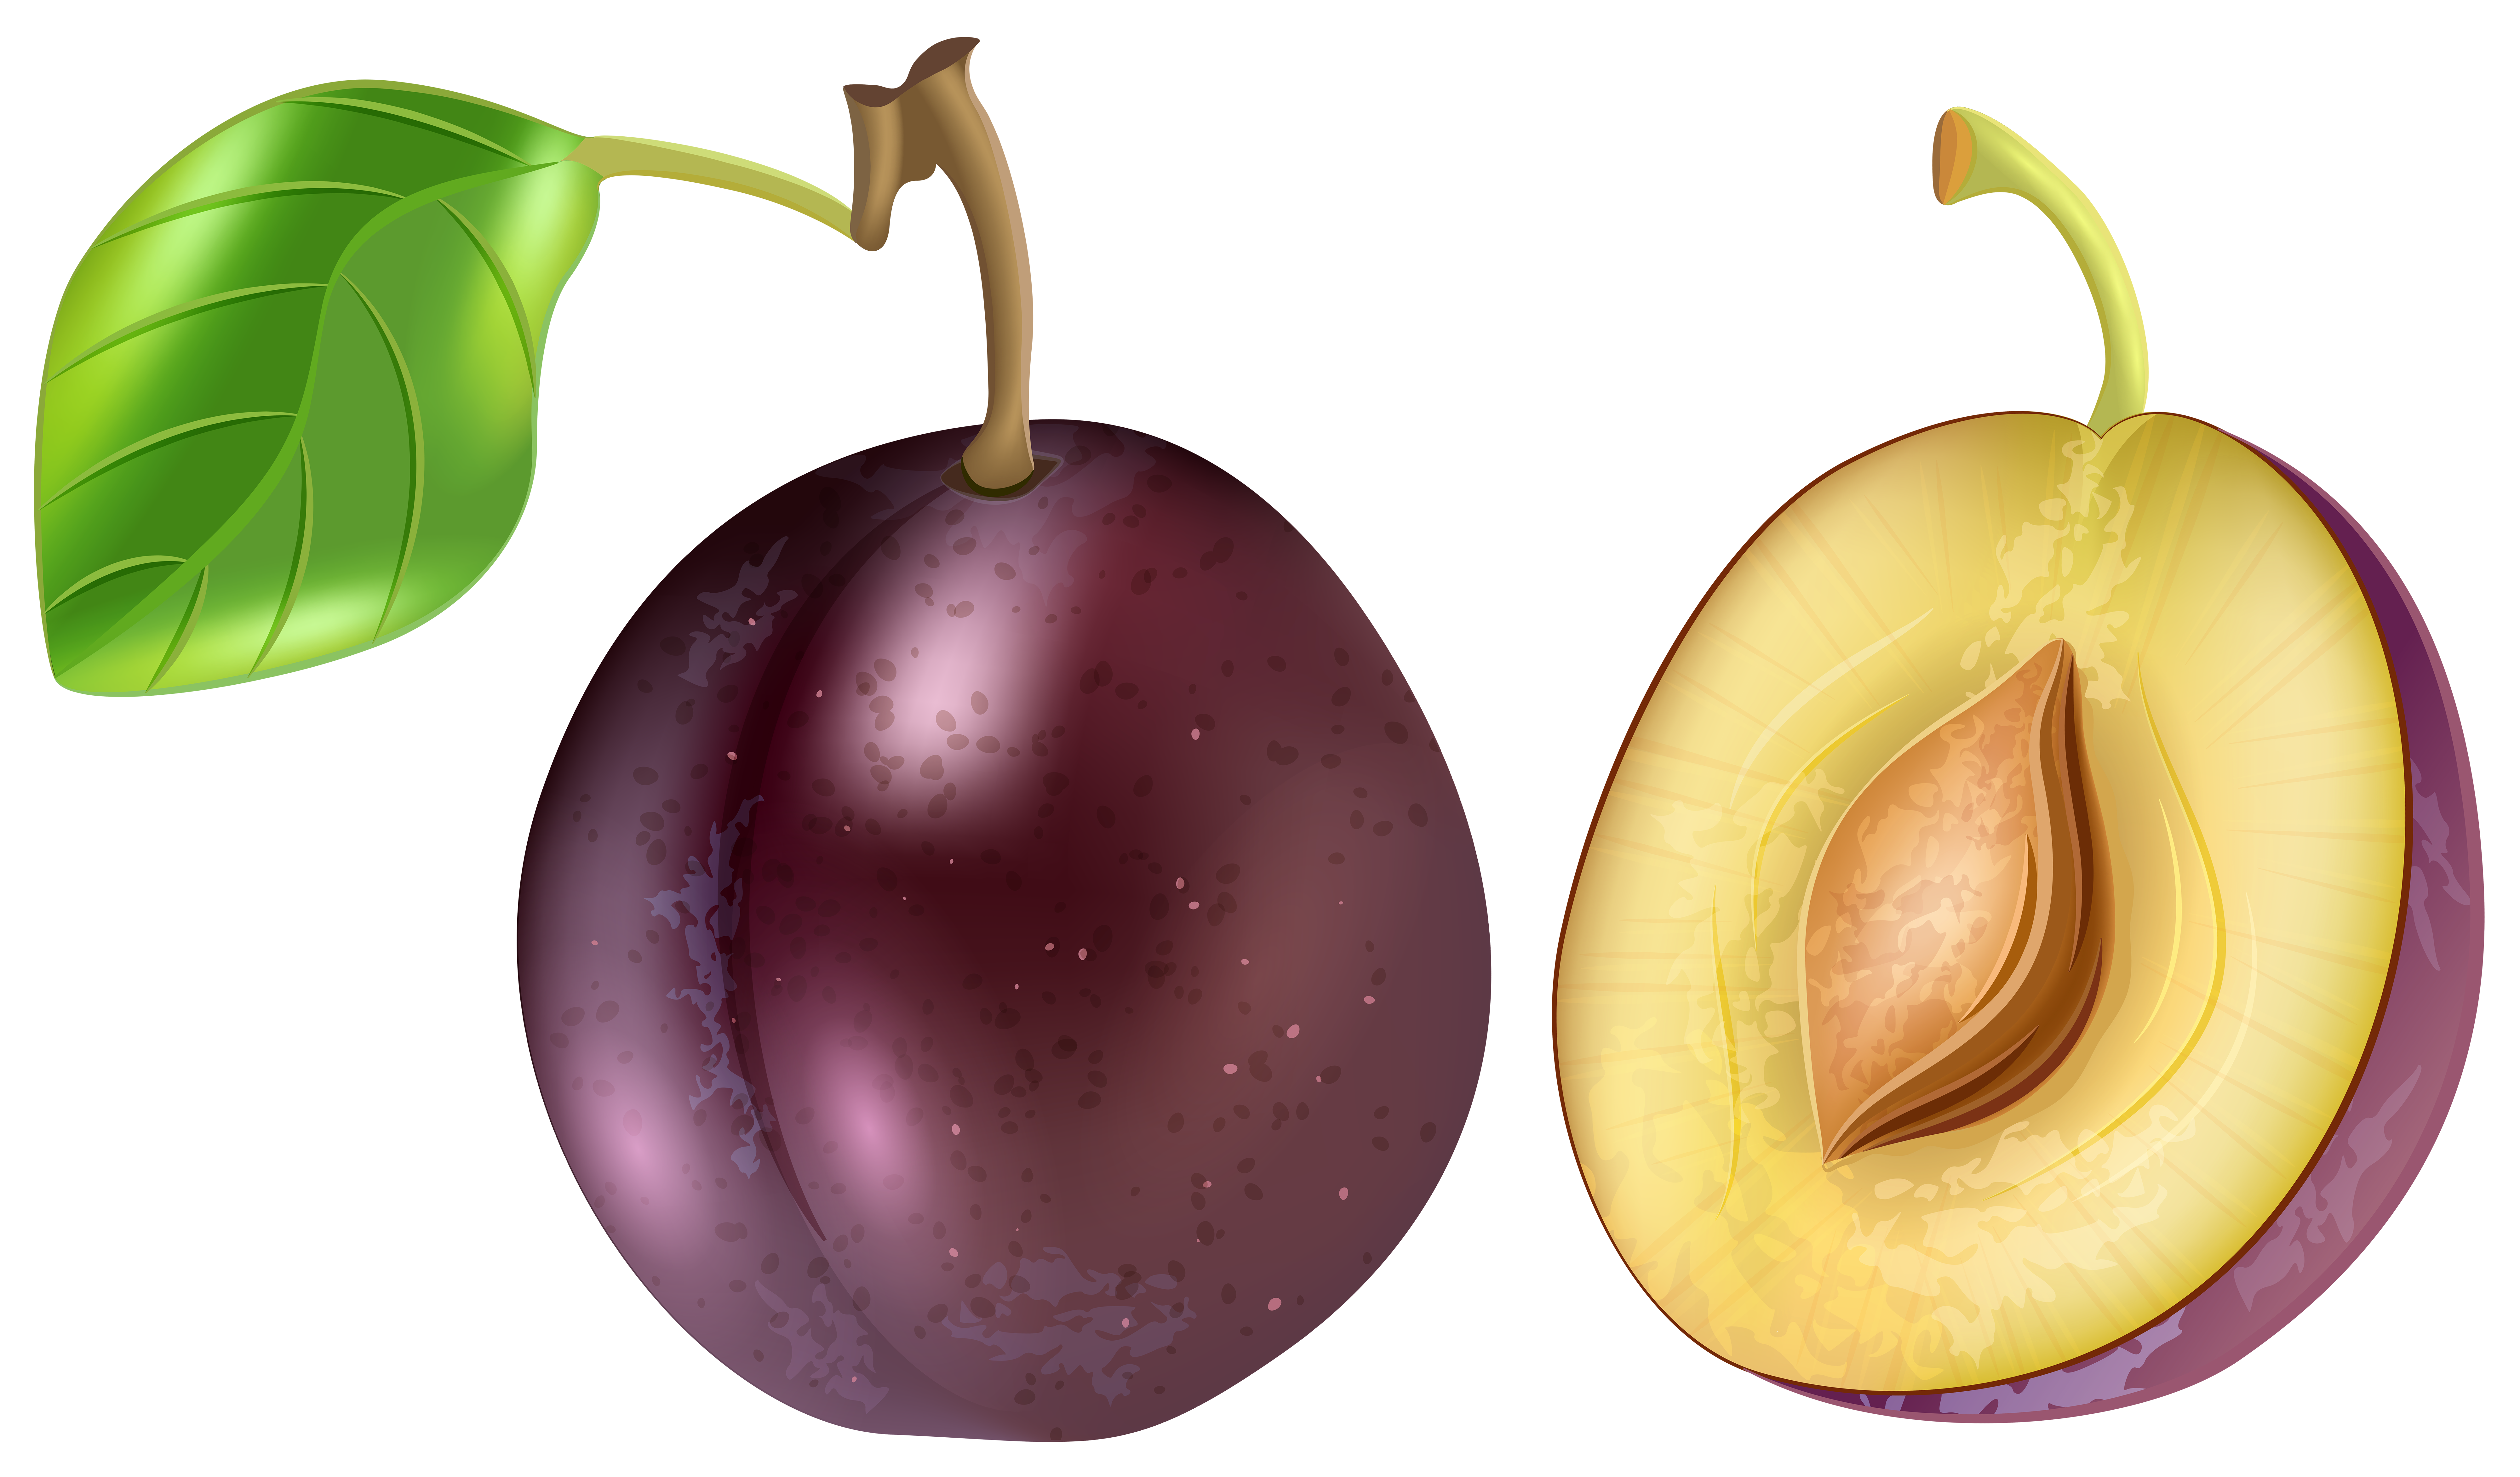 vector royalty free library Png clip art image. Fruit transparent plum